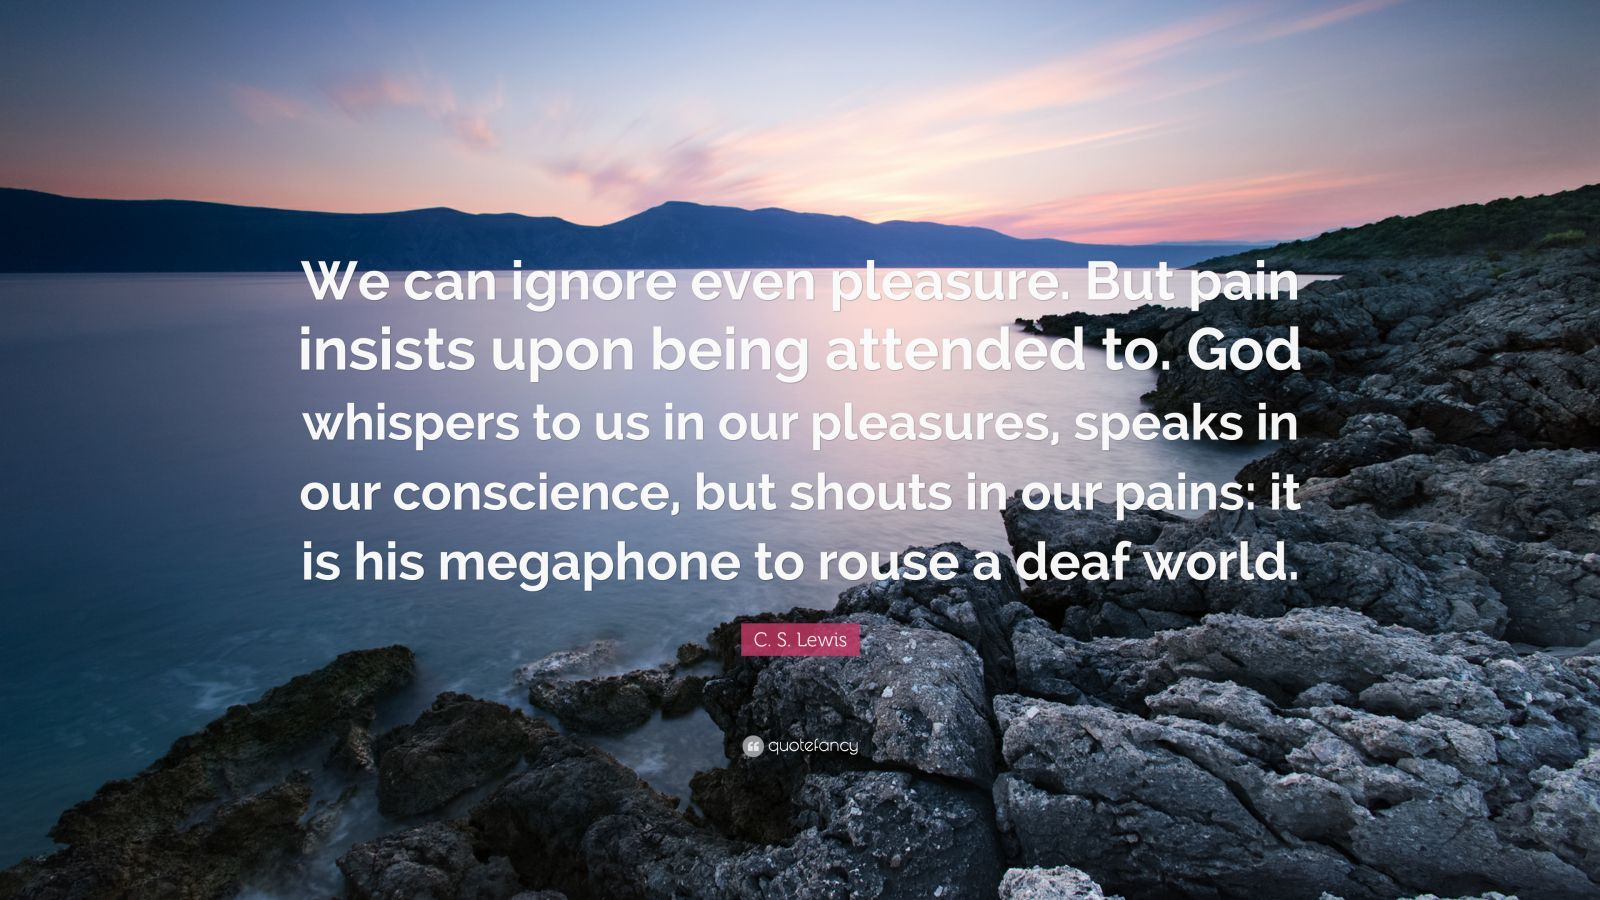 "C. S. Lewis Quote: ""We can ignore even pleasure. But pain insists upon being attended to. God whispers to us in our pleasures, speaks in our conscience, but shouts in our pains: it is his megaphone to rouse a deaf world."""